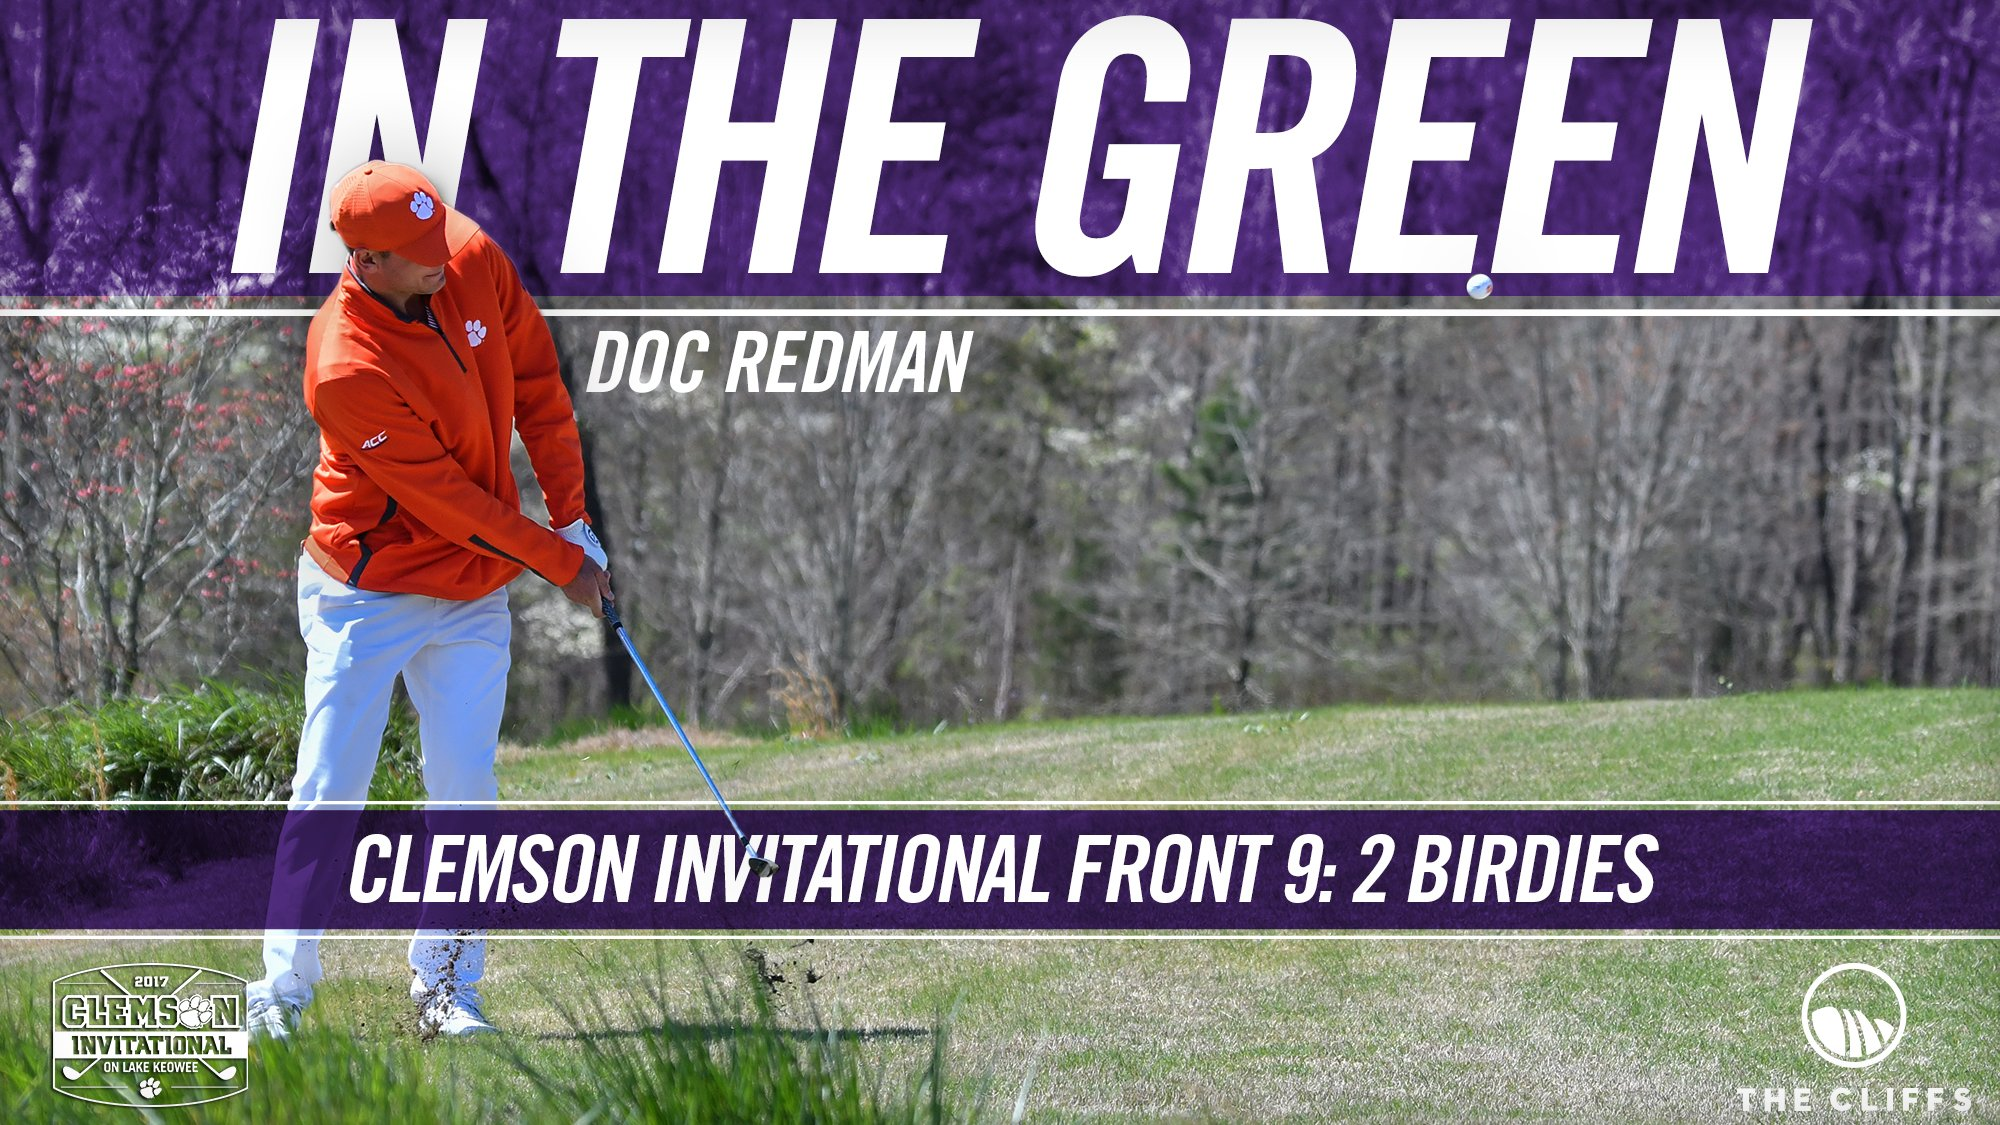 Great front 9 for Doc Redman at the #ClemsonInvitational! ⛳️ https://t.co/dzidhCdzGB